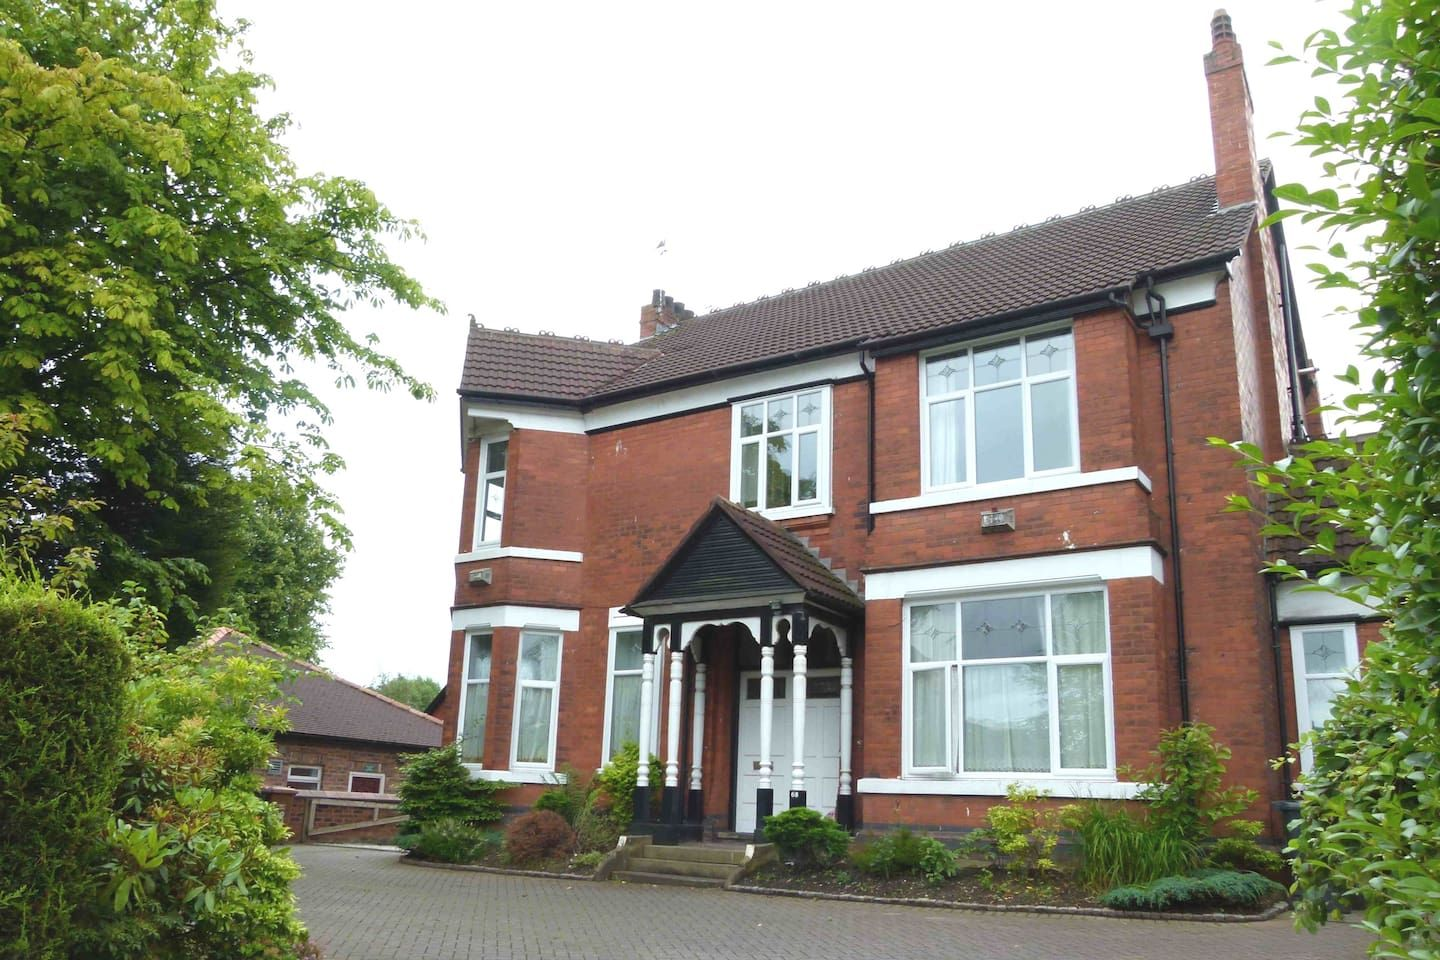 Stunning 2 Beds Ground Floor Flat Manchester Wifi Apartments For Rent In Swinton Victoria House Ground Floor Apartments For Rent